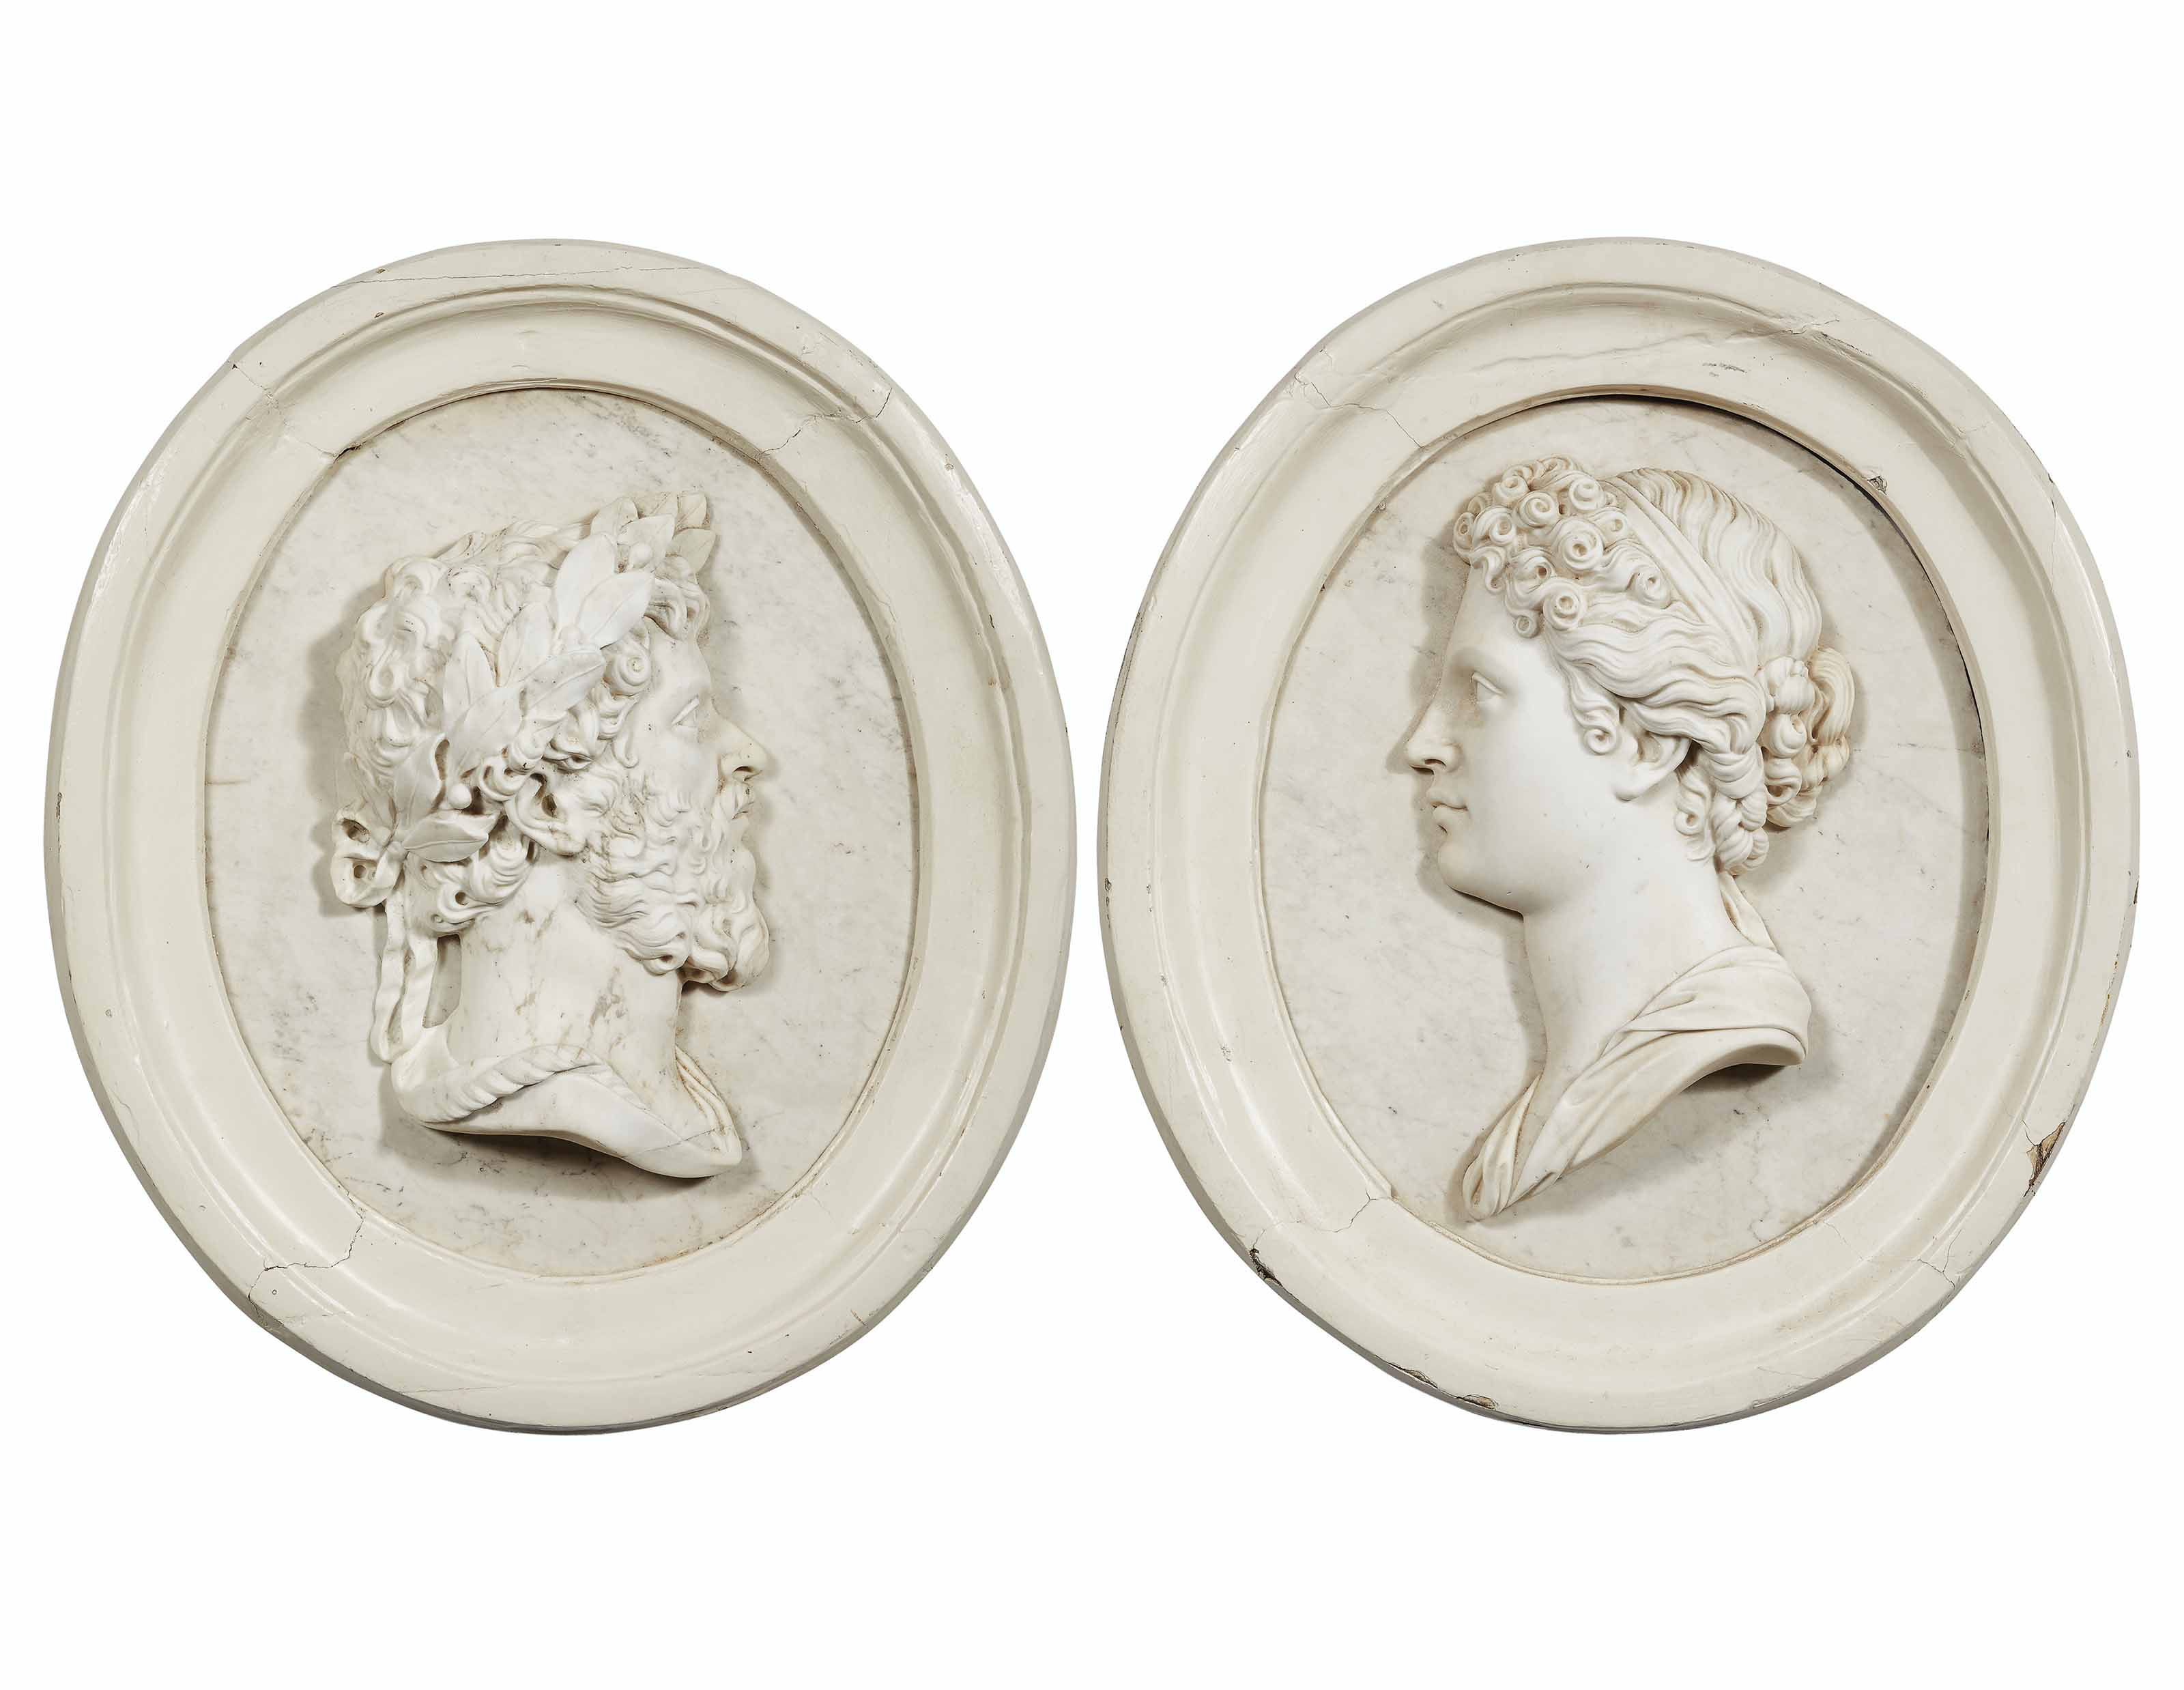 A PAIR OF WHITE MARBLE RELIEFS OF A ROMAN EMPEROR AND EMPRESS